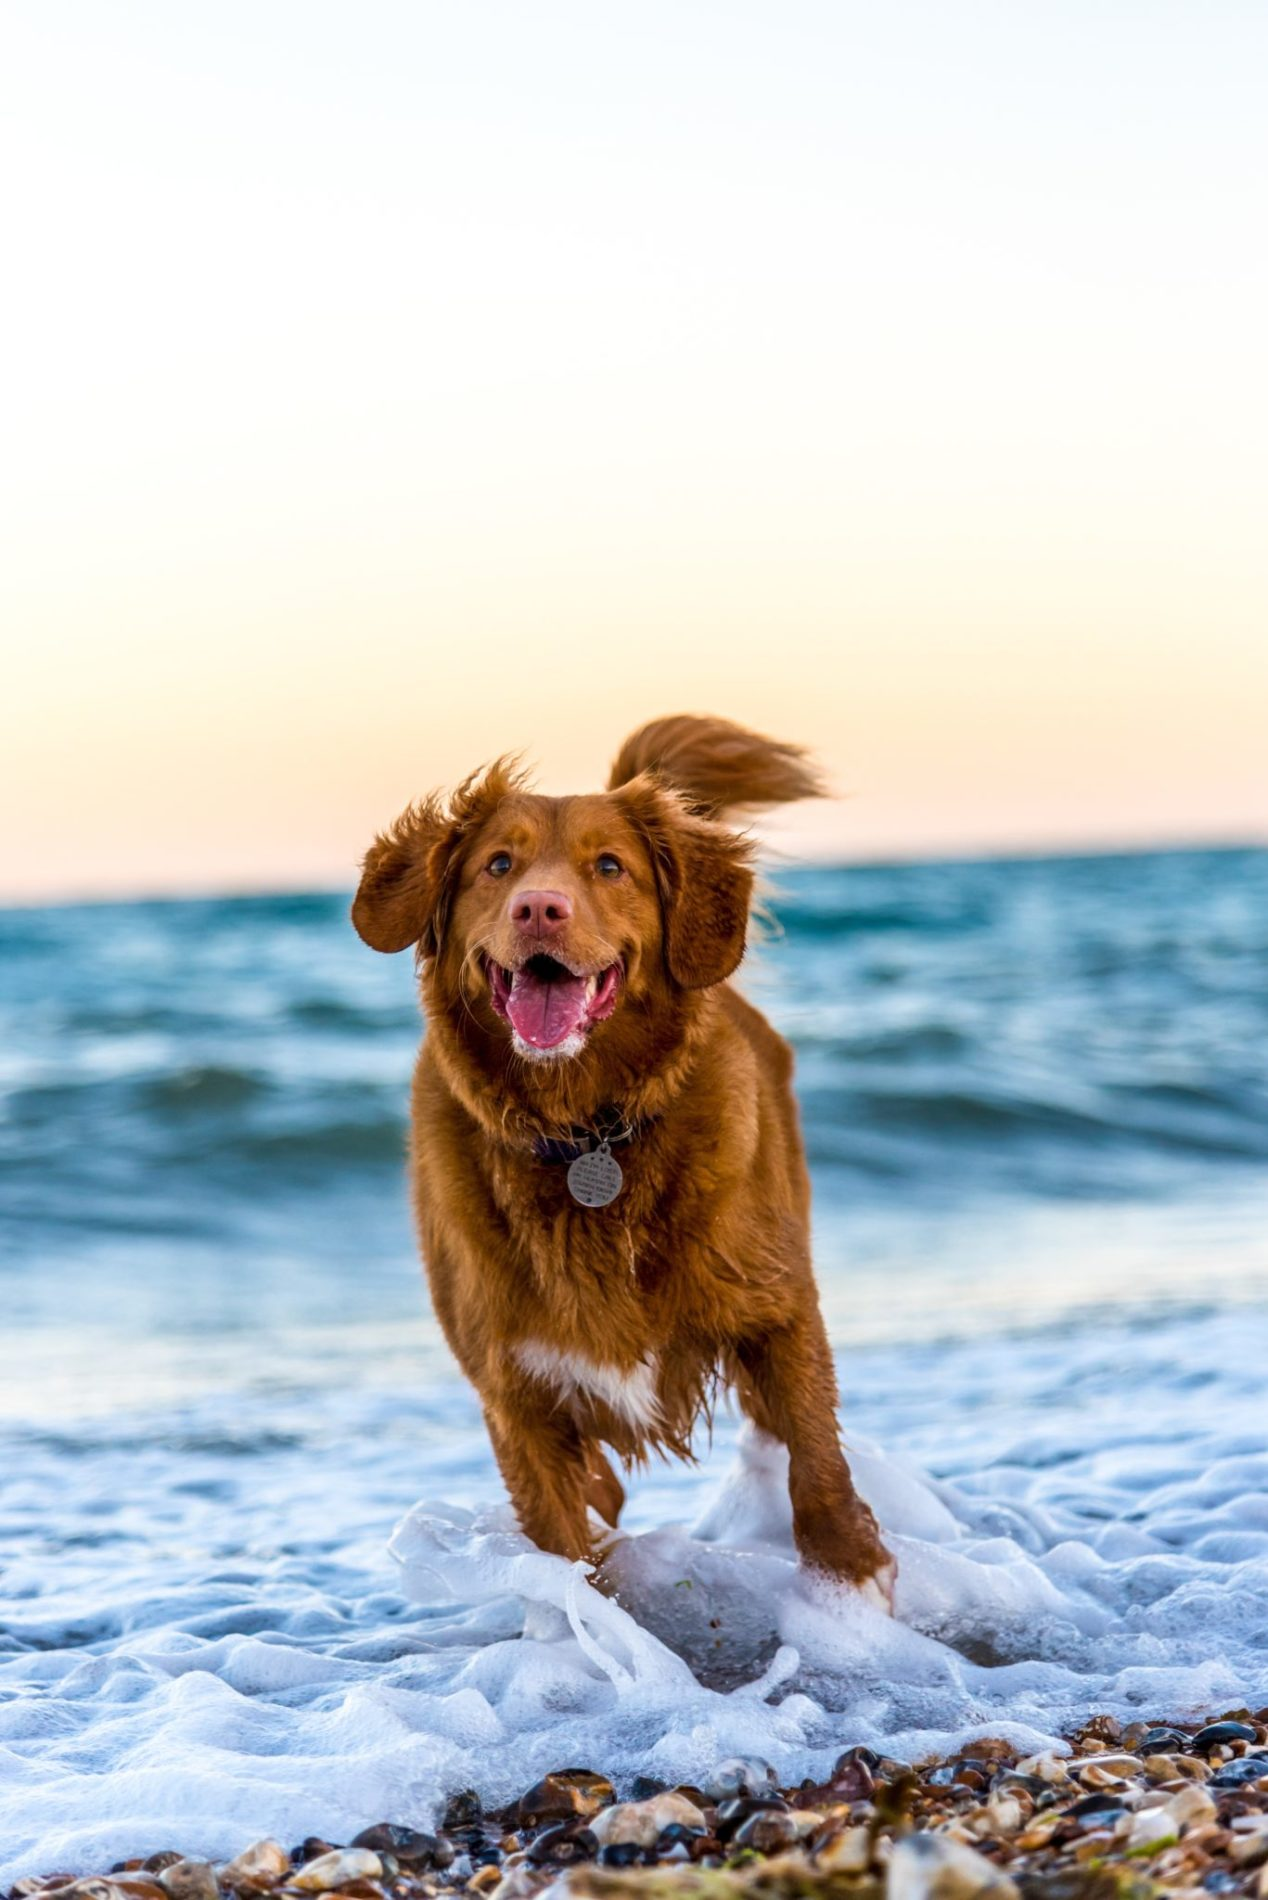 A medium-sized dog runs through foamy ocean water with a big smile.